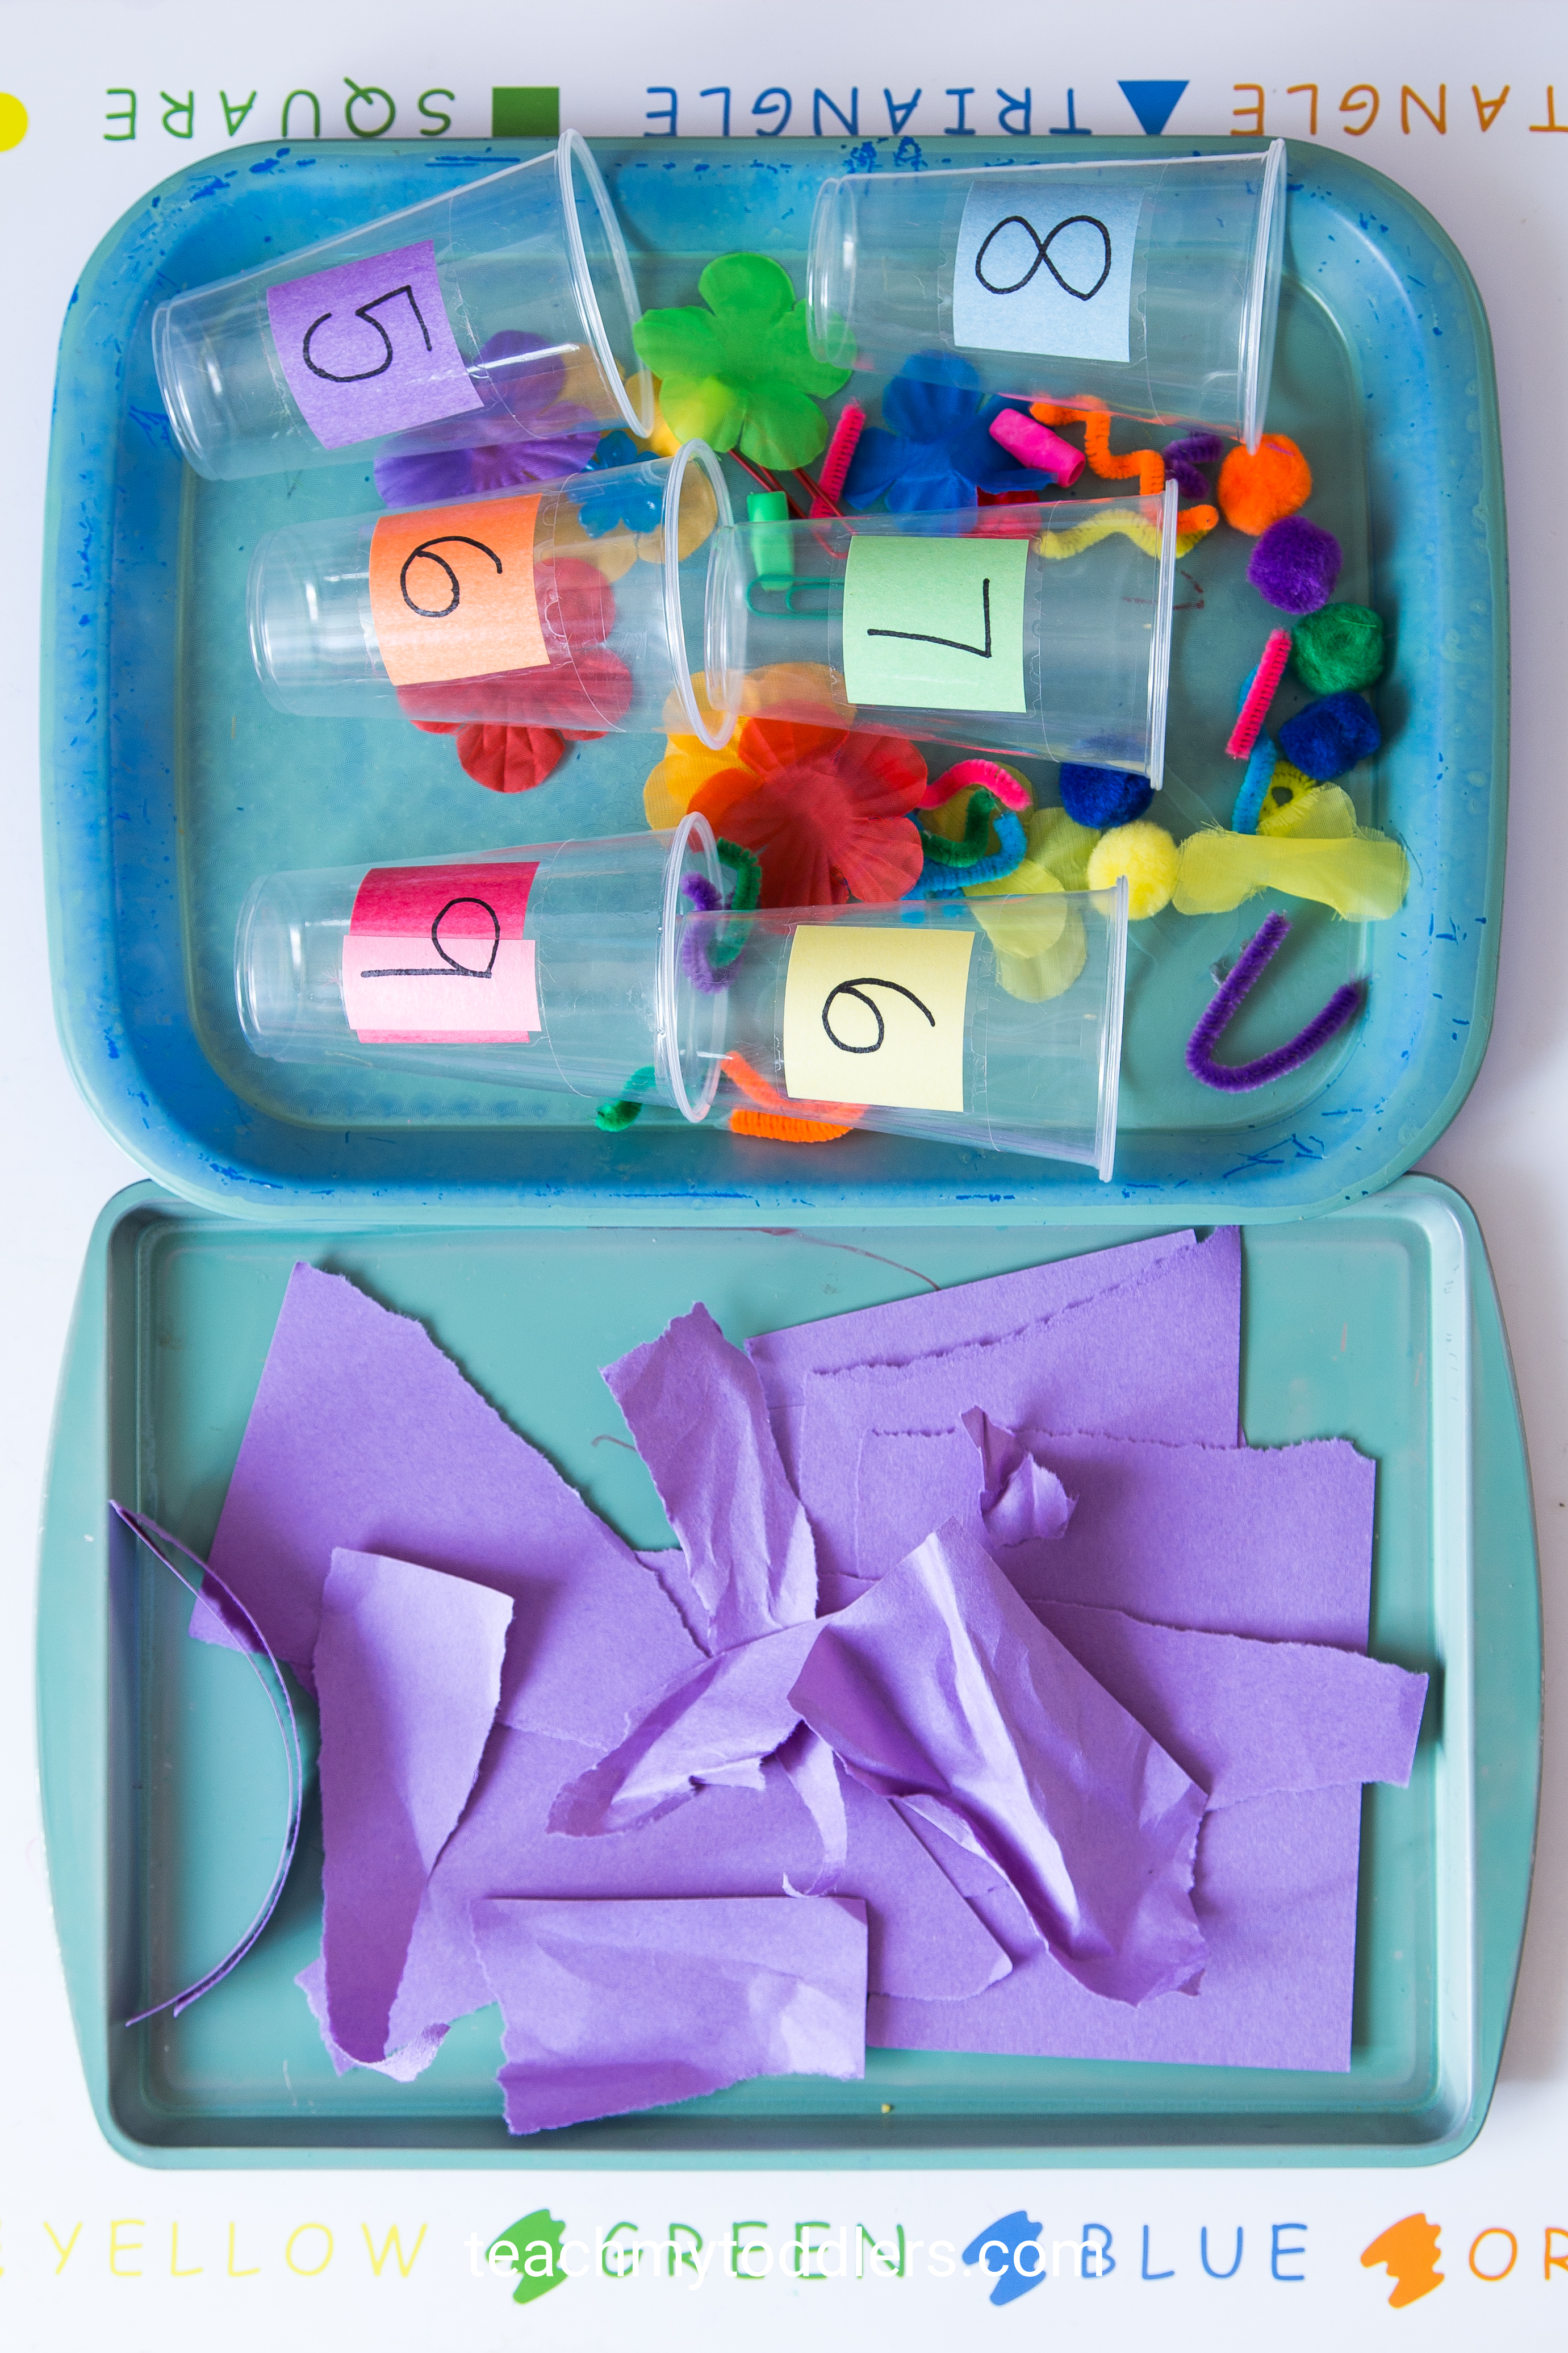 A fun game to teach your toddler the color purple